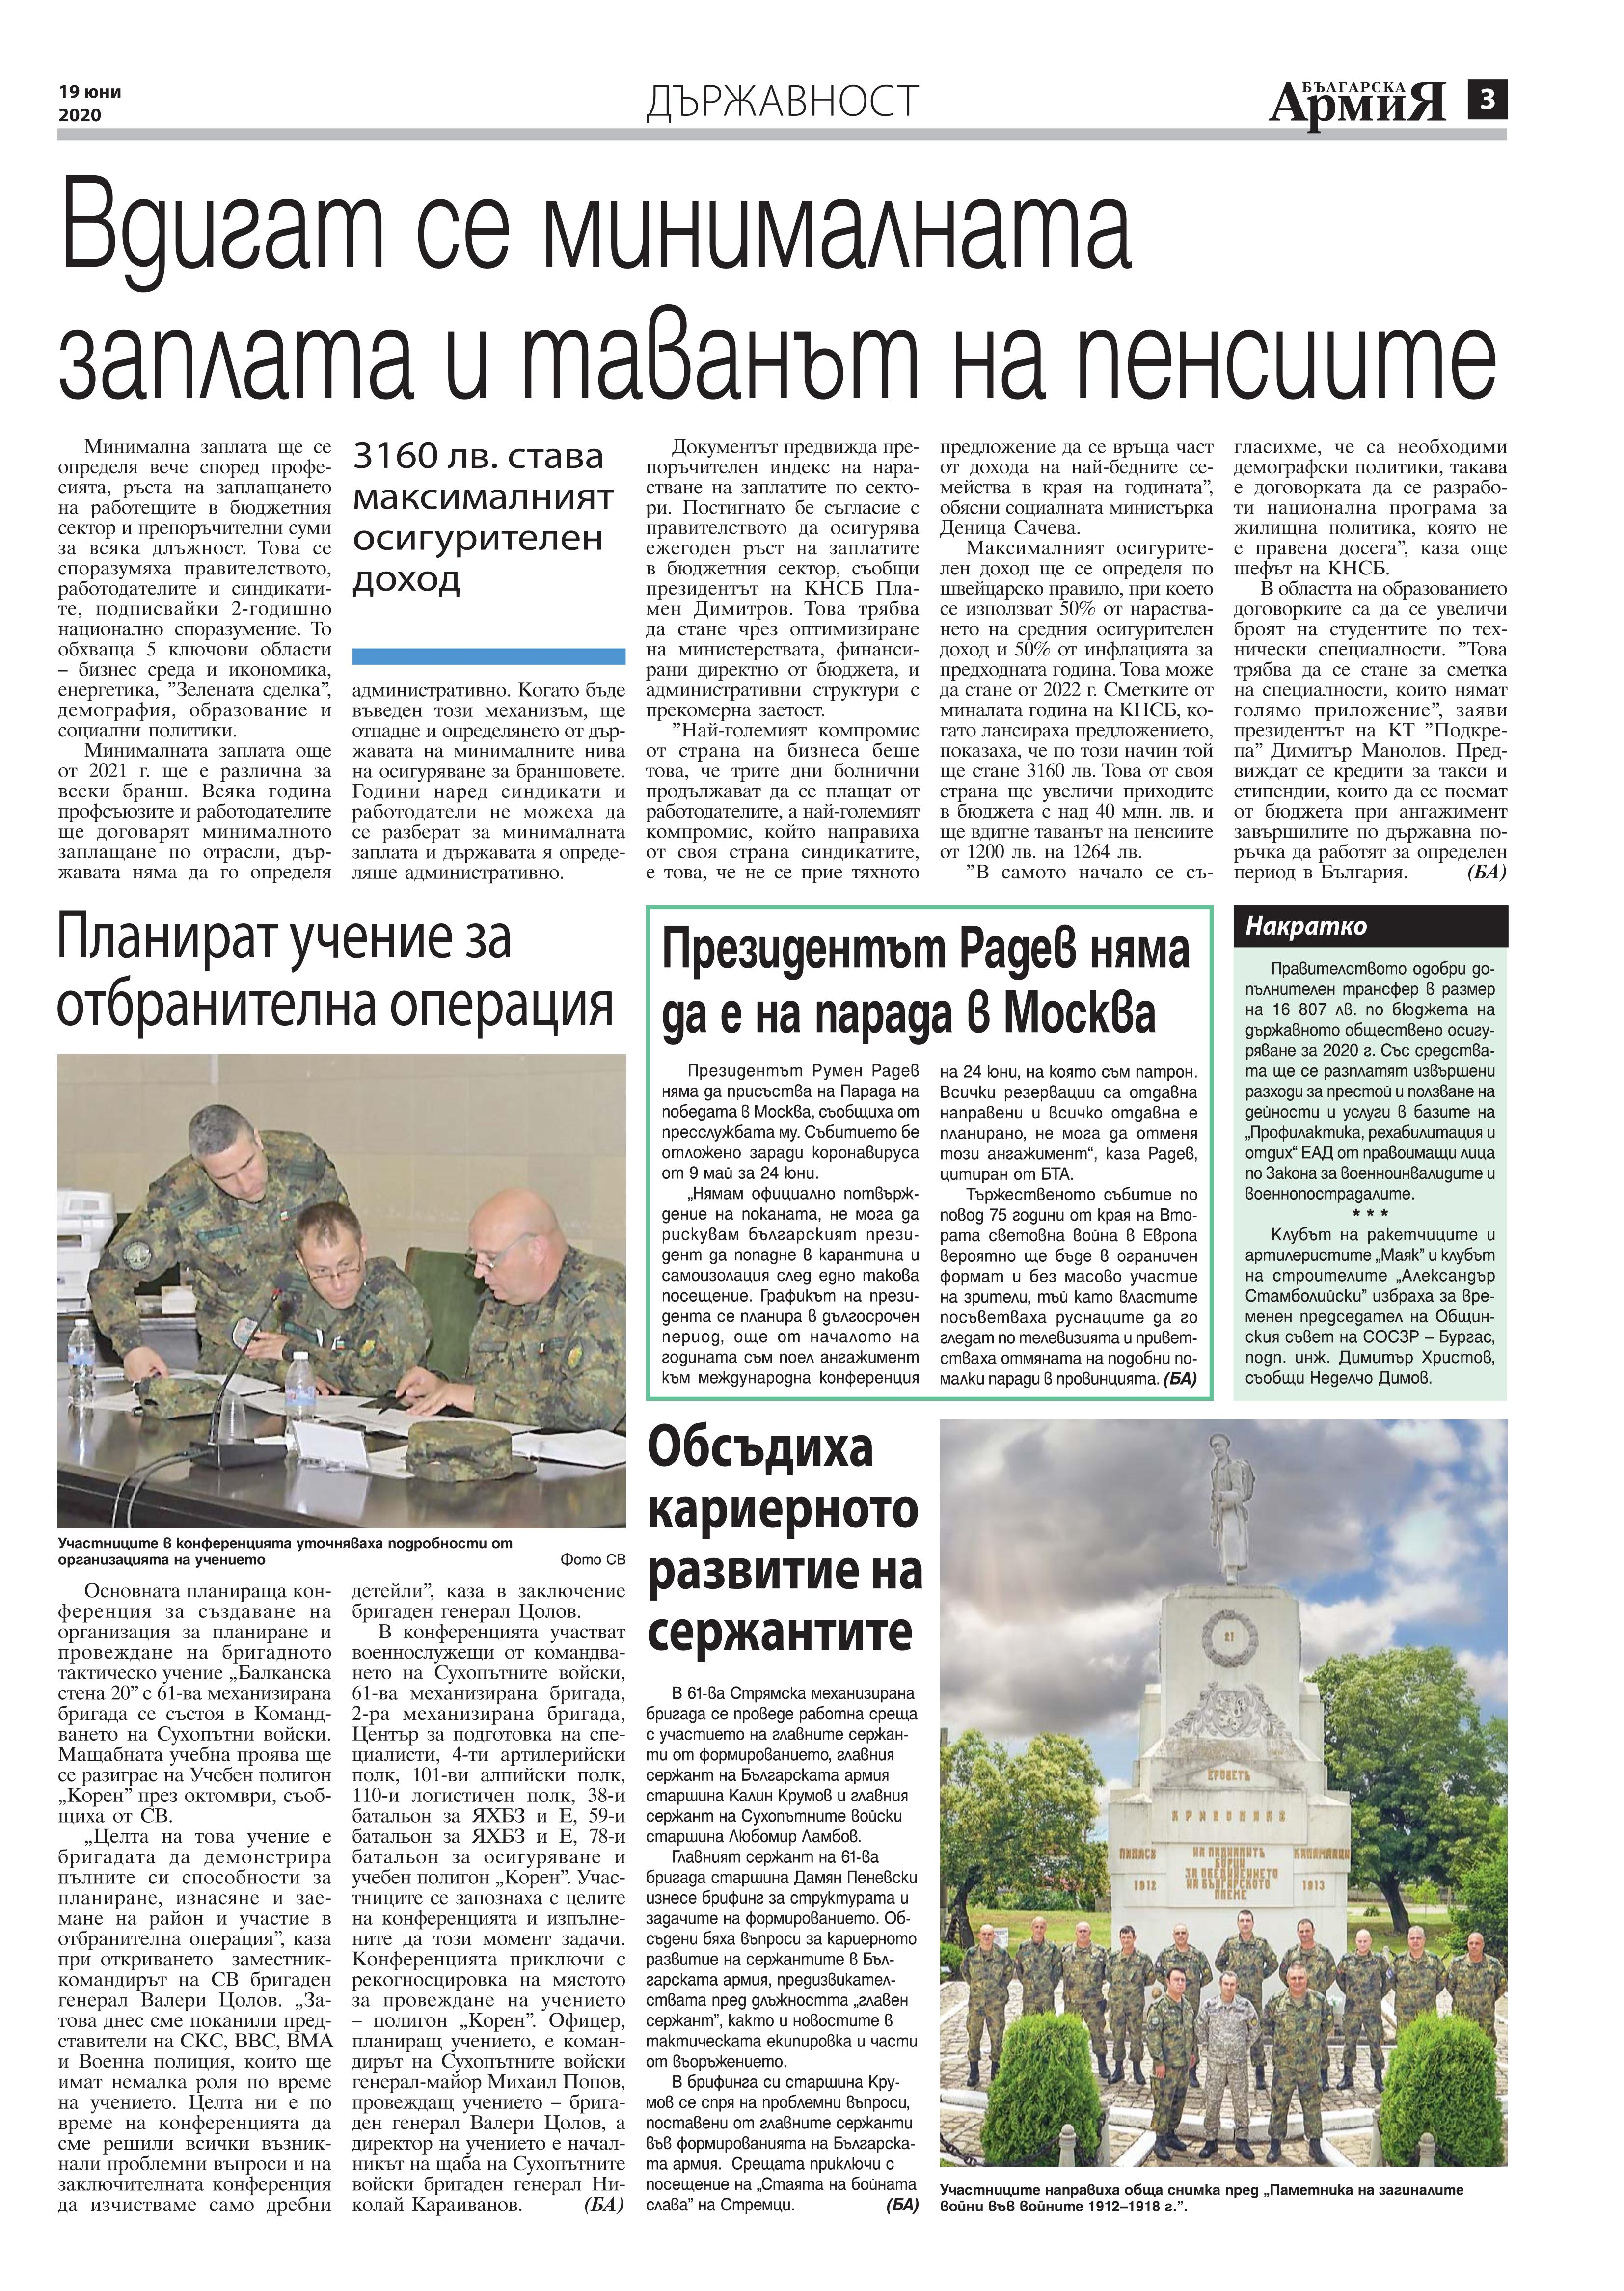 https://armymedia.bg/wp-content/uploads/2015/06/03.page1_-141.jpg